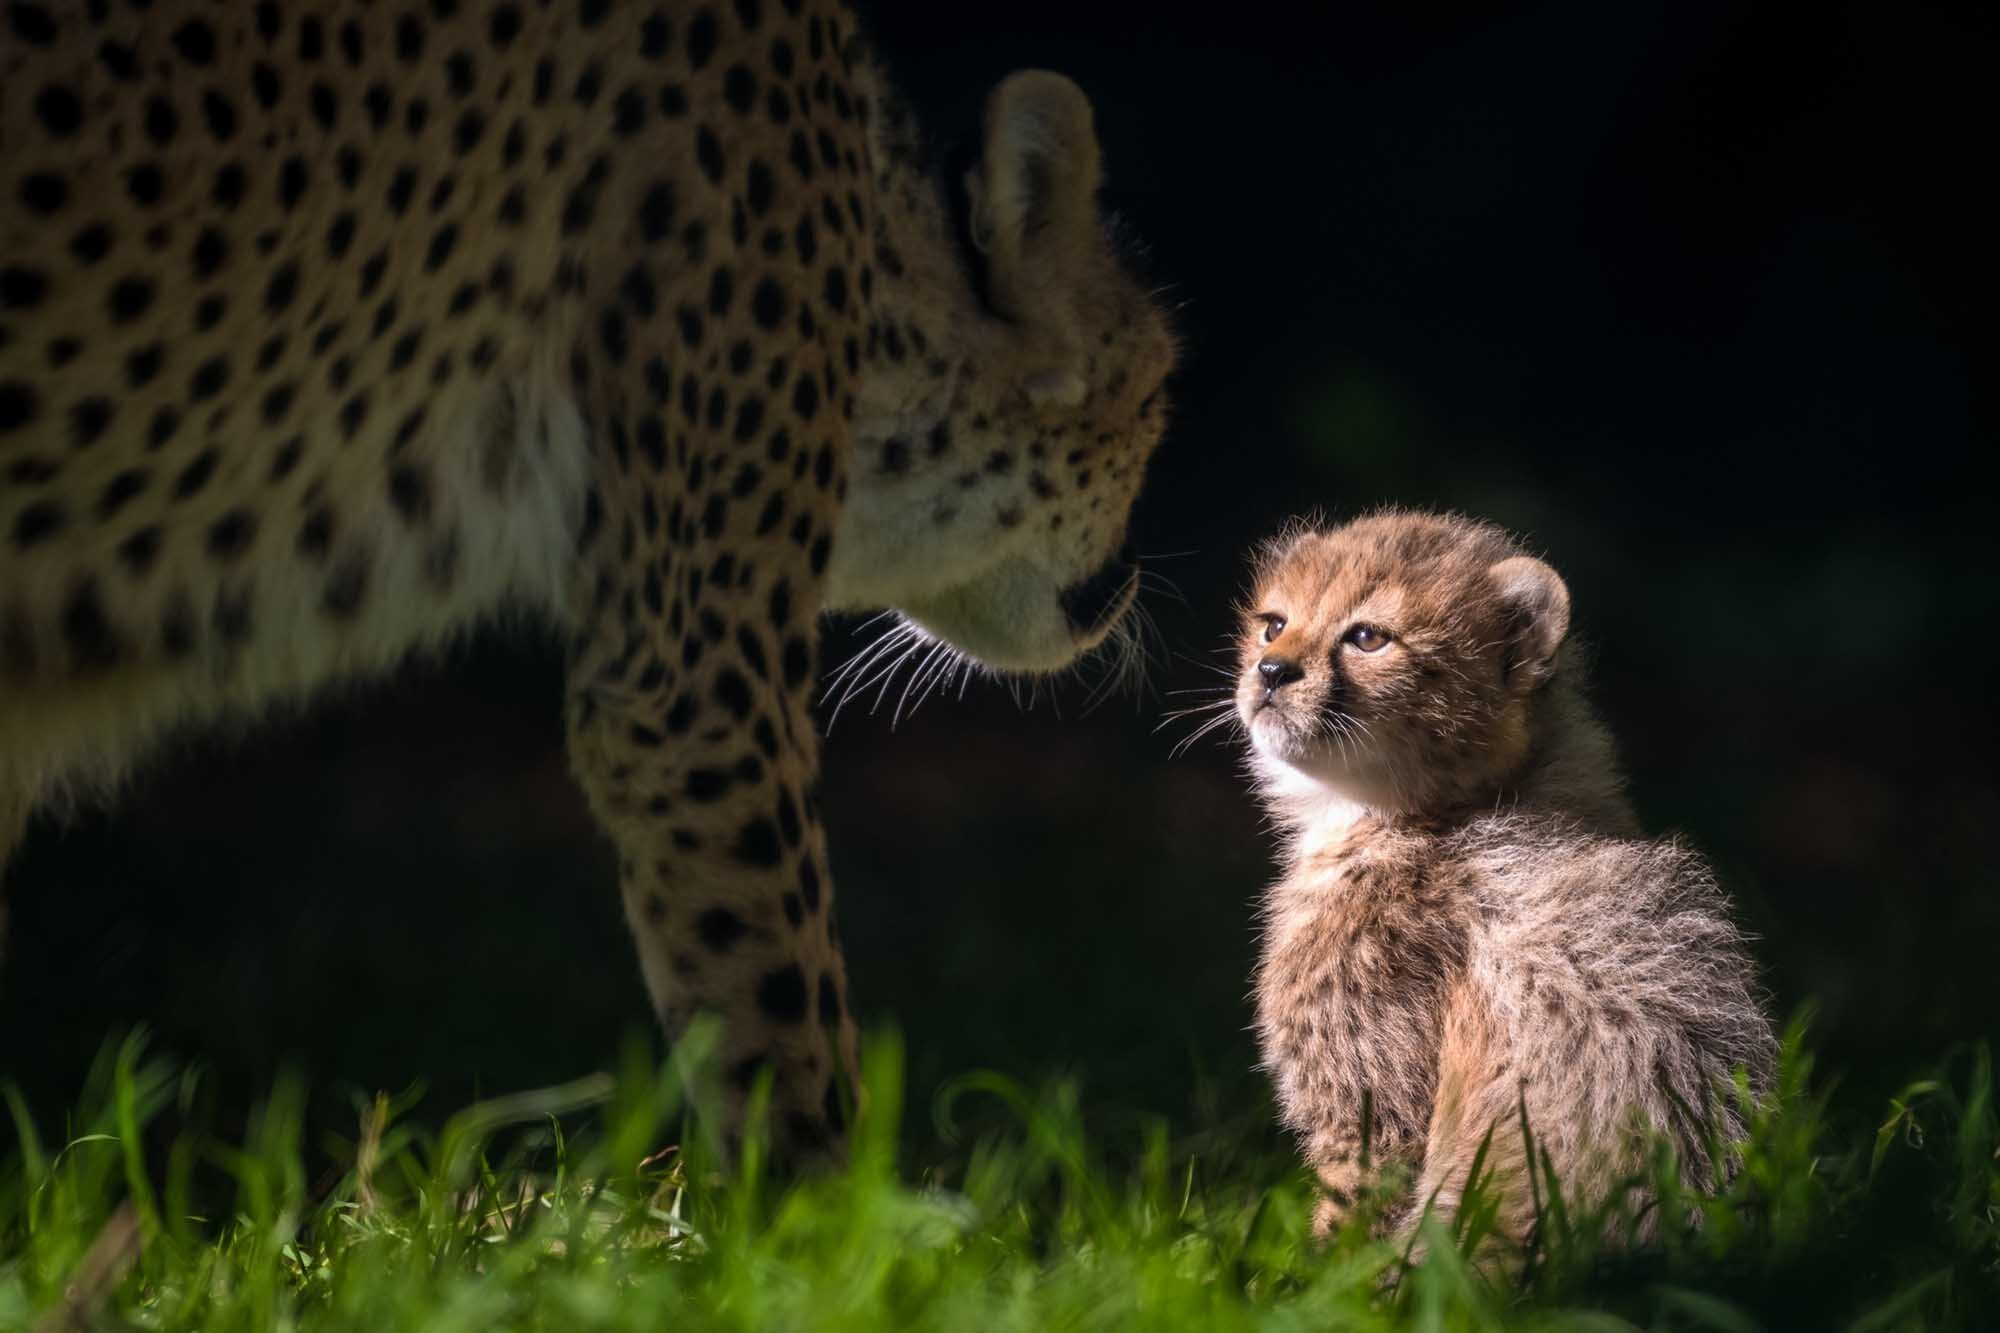 A very young Northern Cheetah cub and its mother photographed at Fota Wildlife Park, Co. Cork.